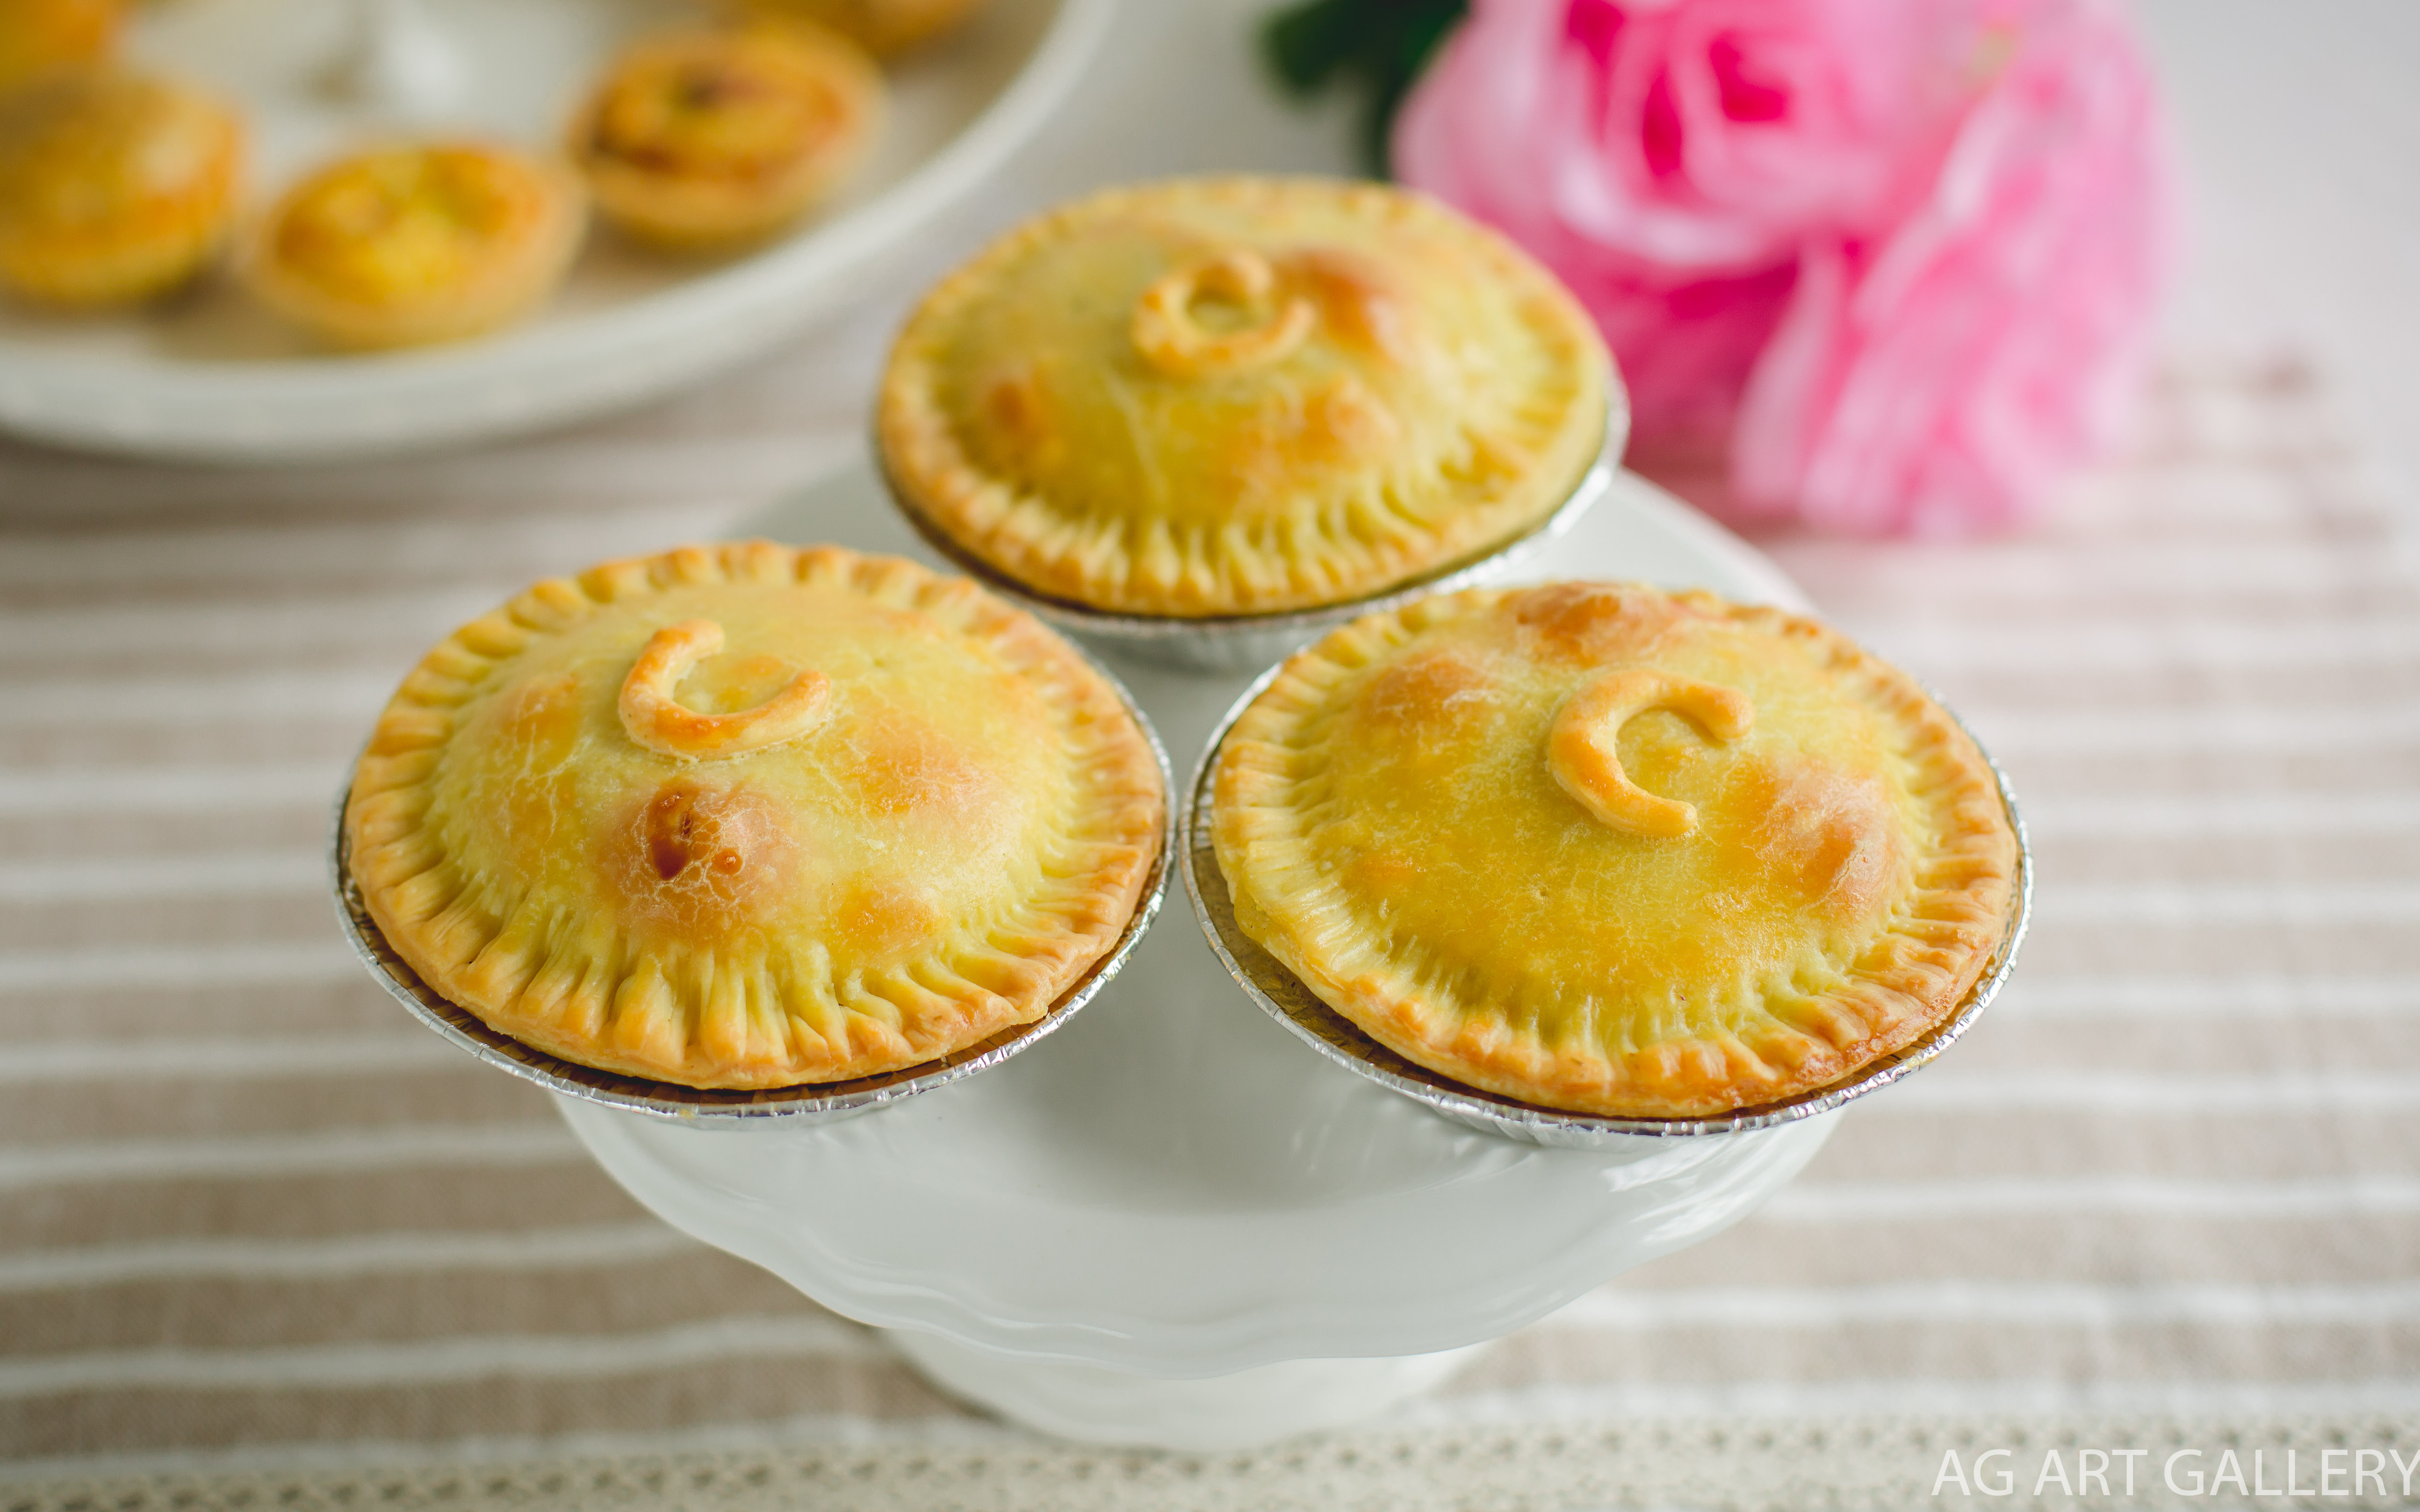 Baked Goods image